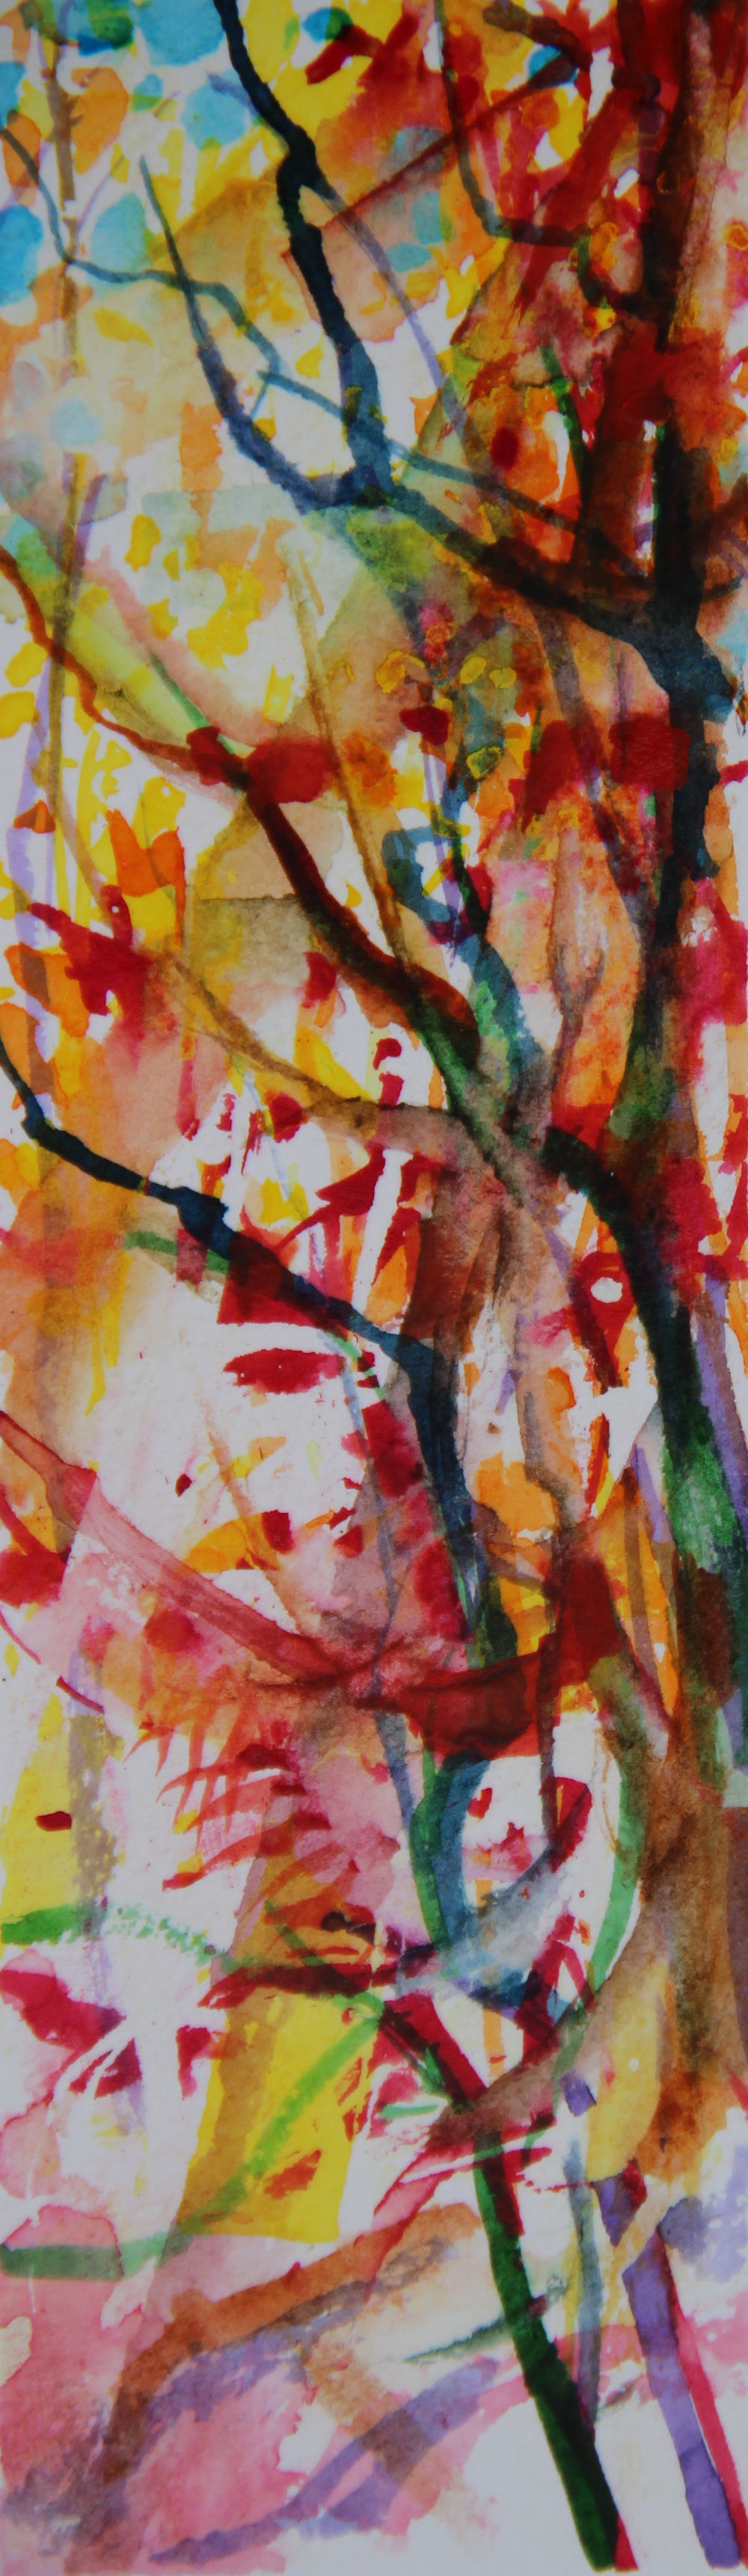 Autumn Forest Scene 12, about 6H x 2W inches watercolors on 140 lb cold pressed